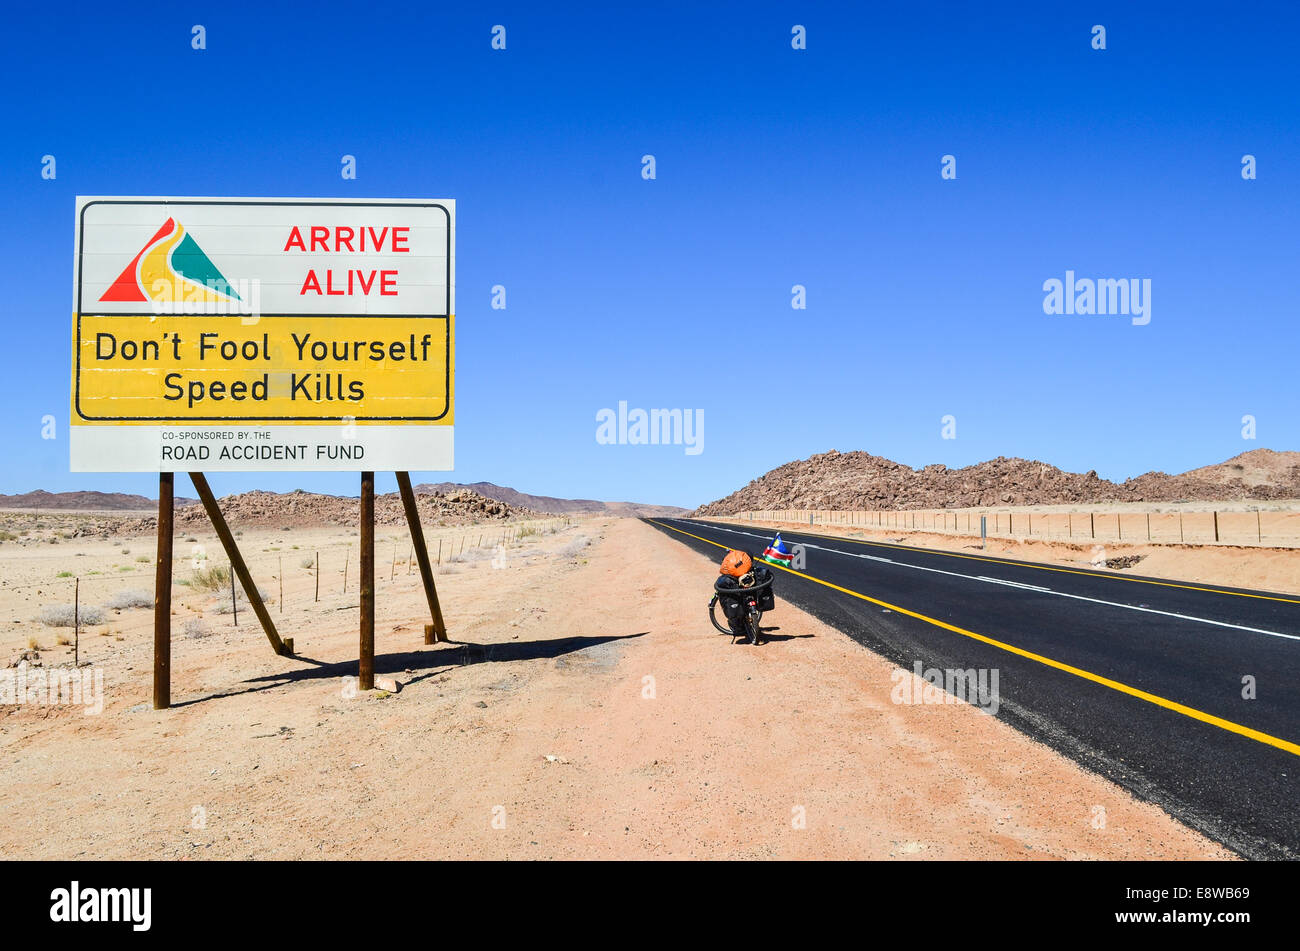 Road safety sign in South Africa, Northern Cape, reading 'Don't fool yourself, Speed kills' and a bicycle - Stock Image